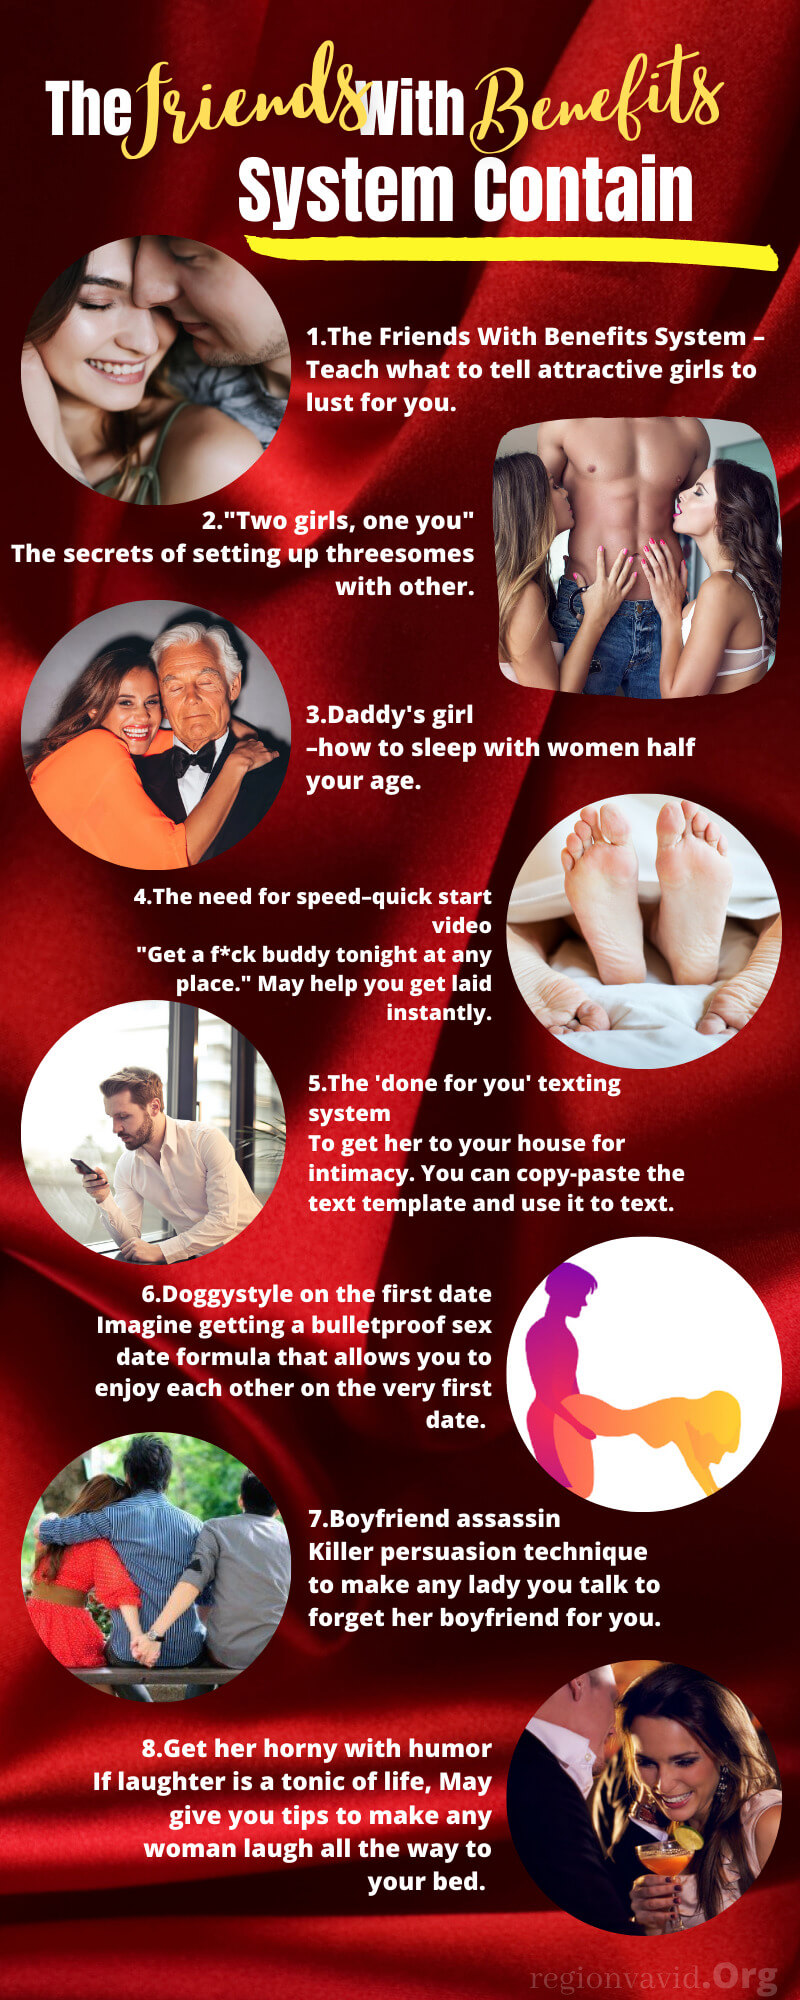 The Friends With Benefits Your guide